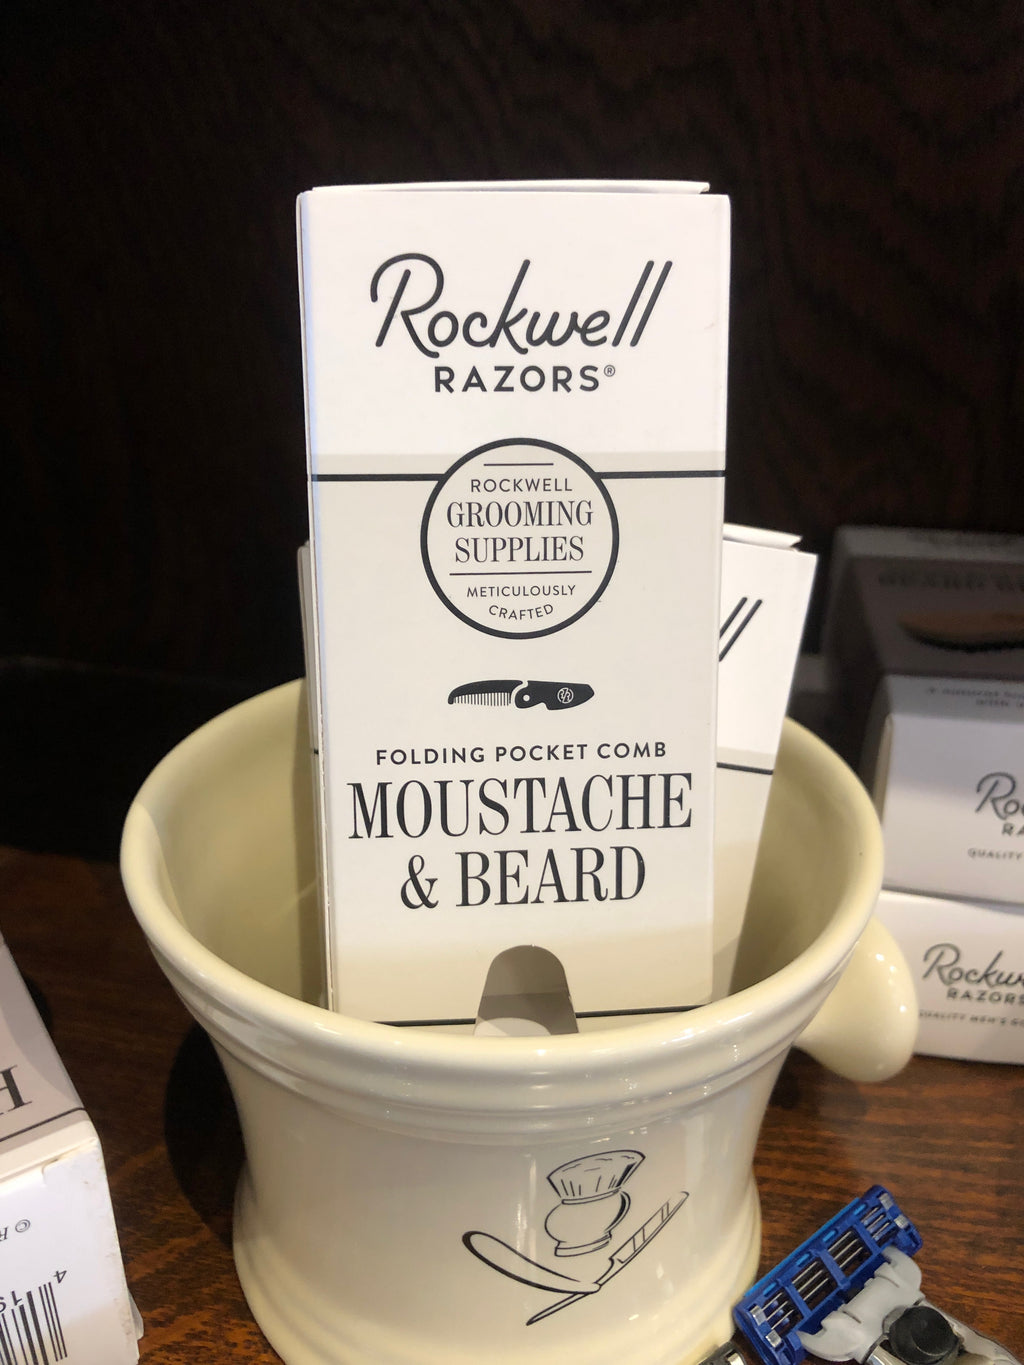 Rockwell Razors Beard and Mustache Comb